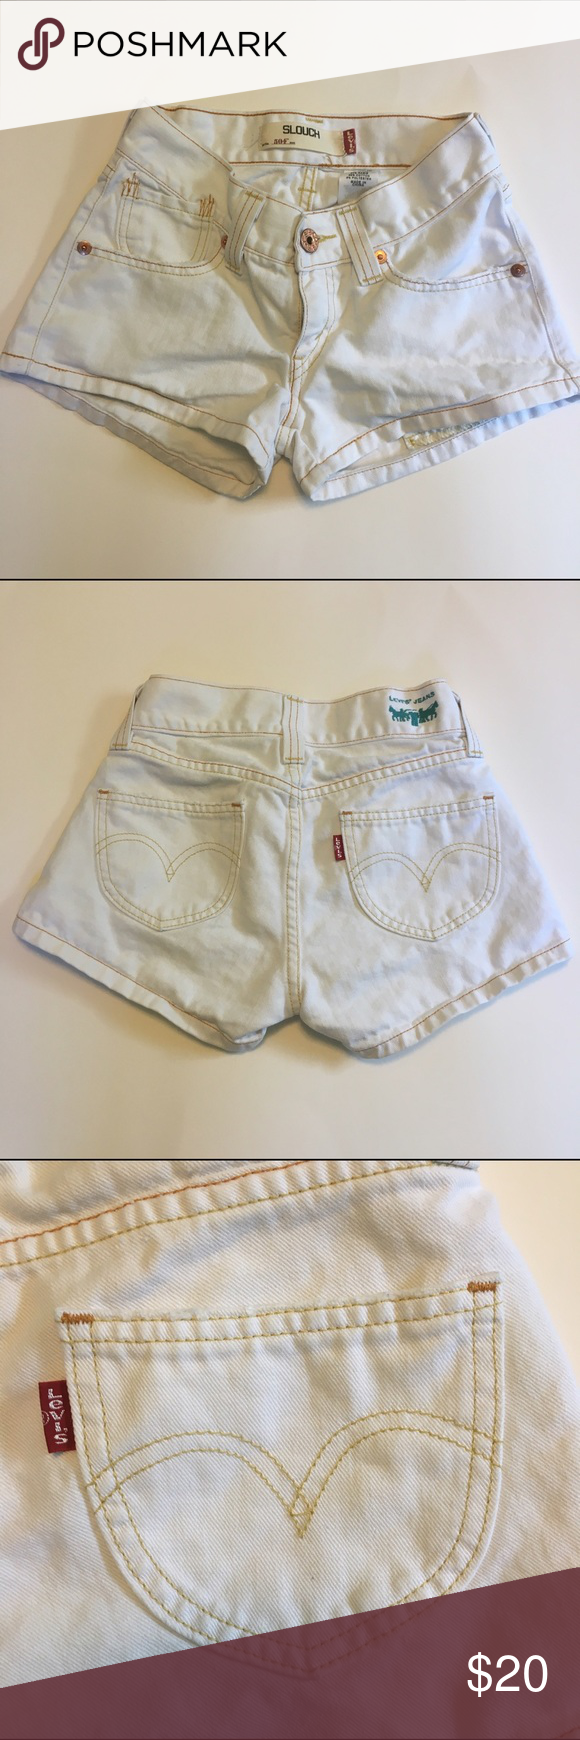 Levi's White Shorts - Size 1 Levi's White Shorts - Size 1    ** Remember to bundle and save! ** Levi's Shorts